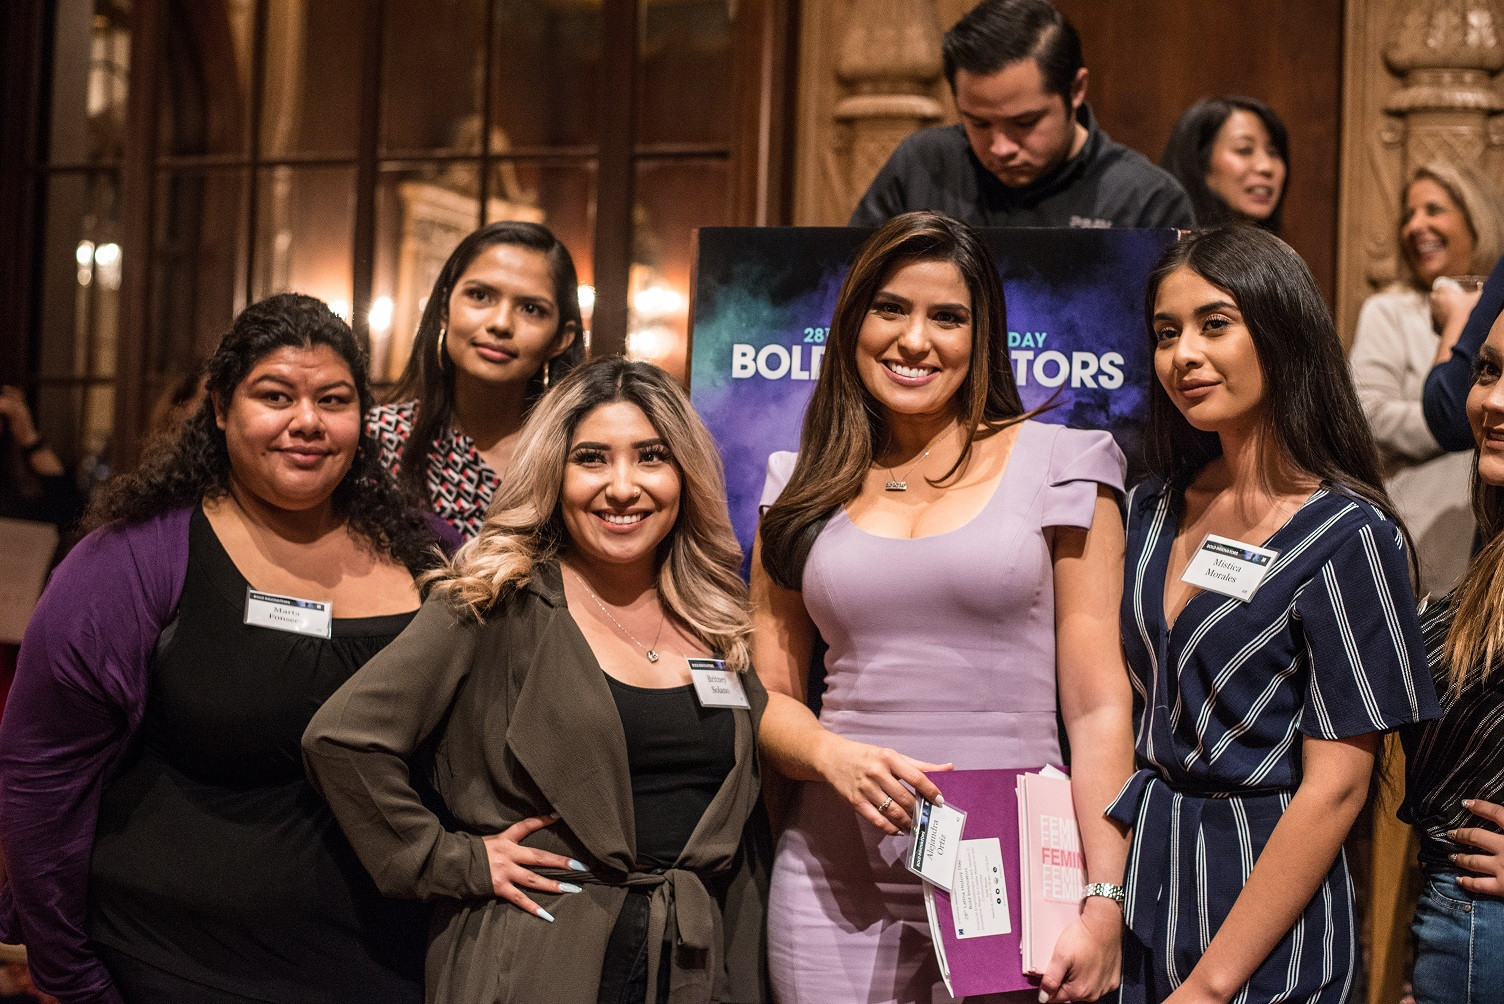 Moderator Alejandra Ortiz of Telemundo52 with conference attendees